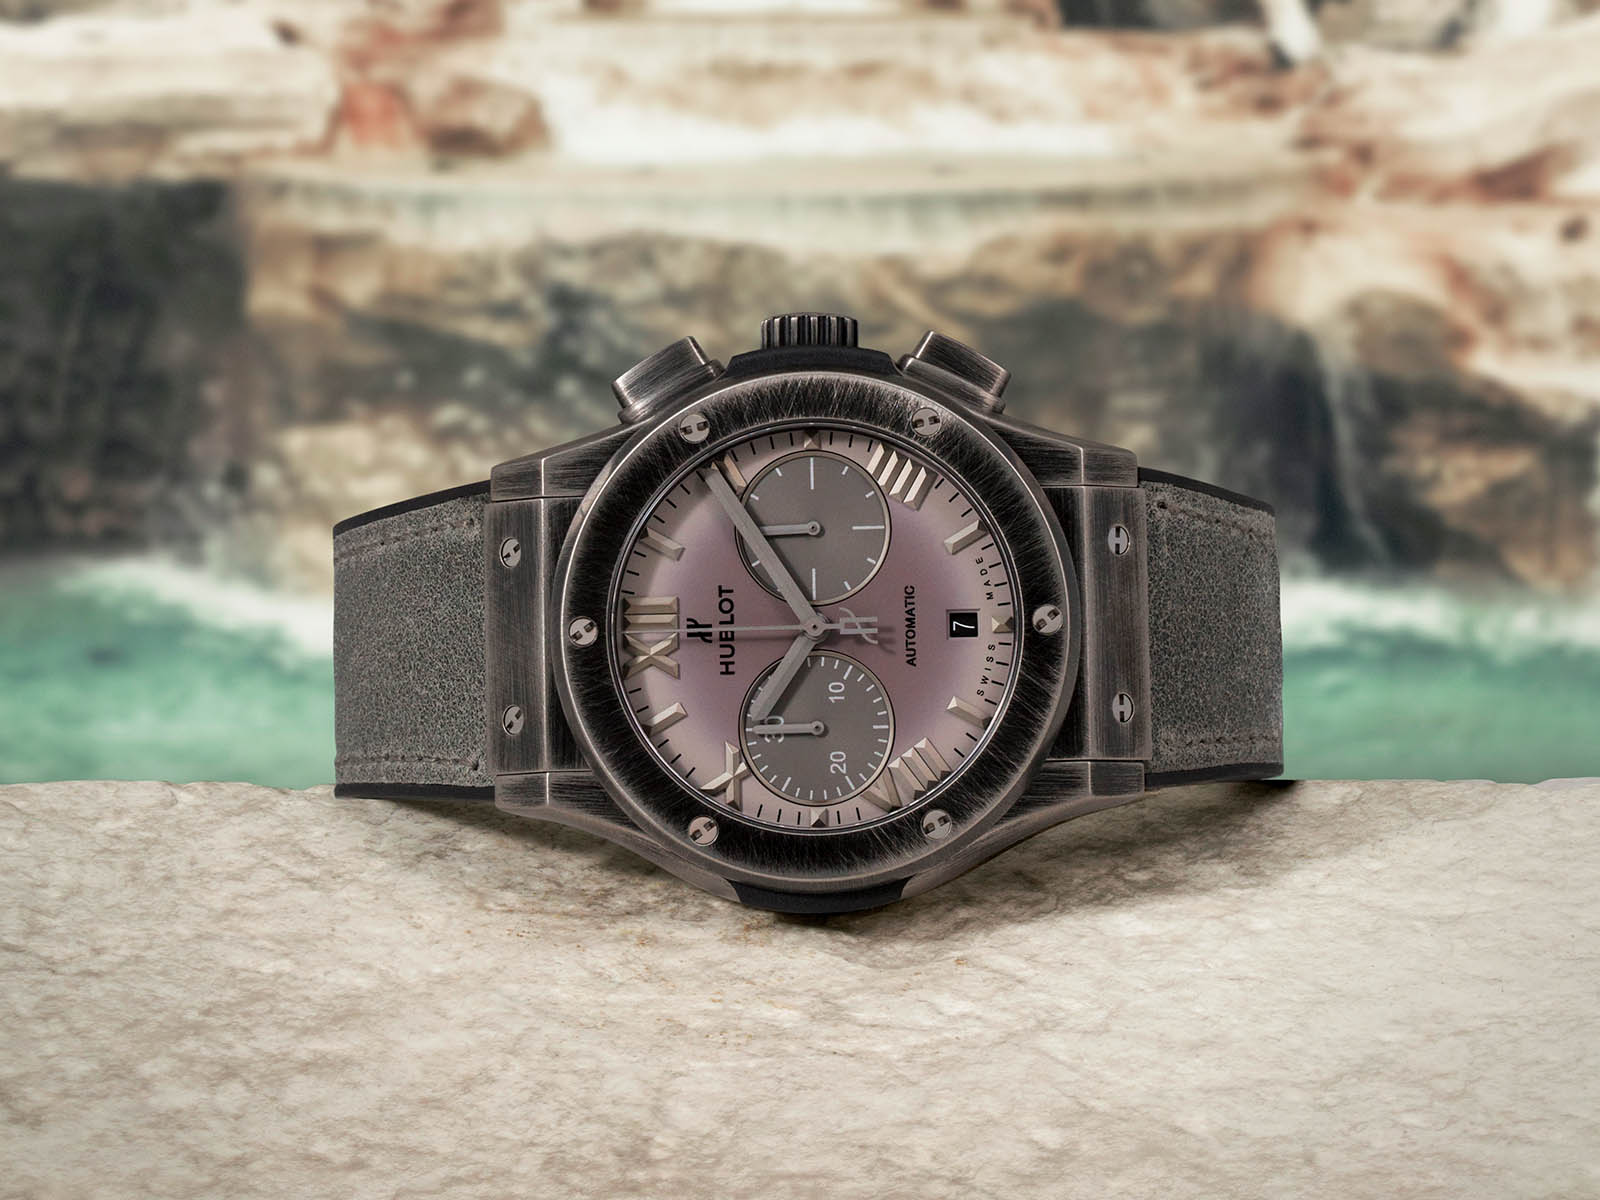 521-nx-4610-vr-rom20-hublot-classic-fusion-chronograph-special-edition-boutique-roma-1.jpg